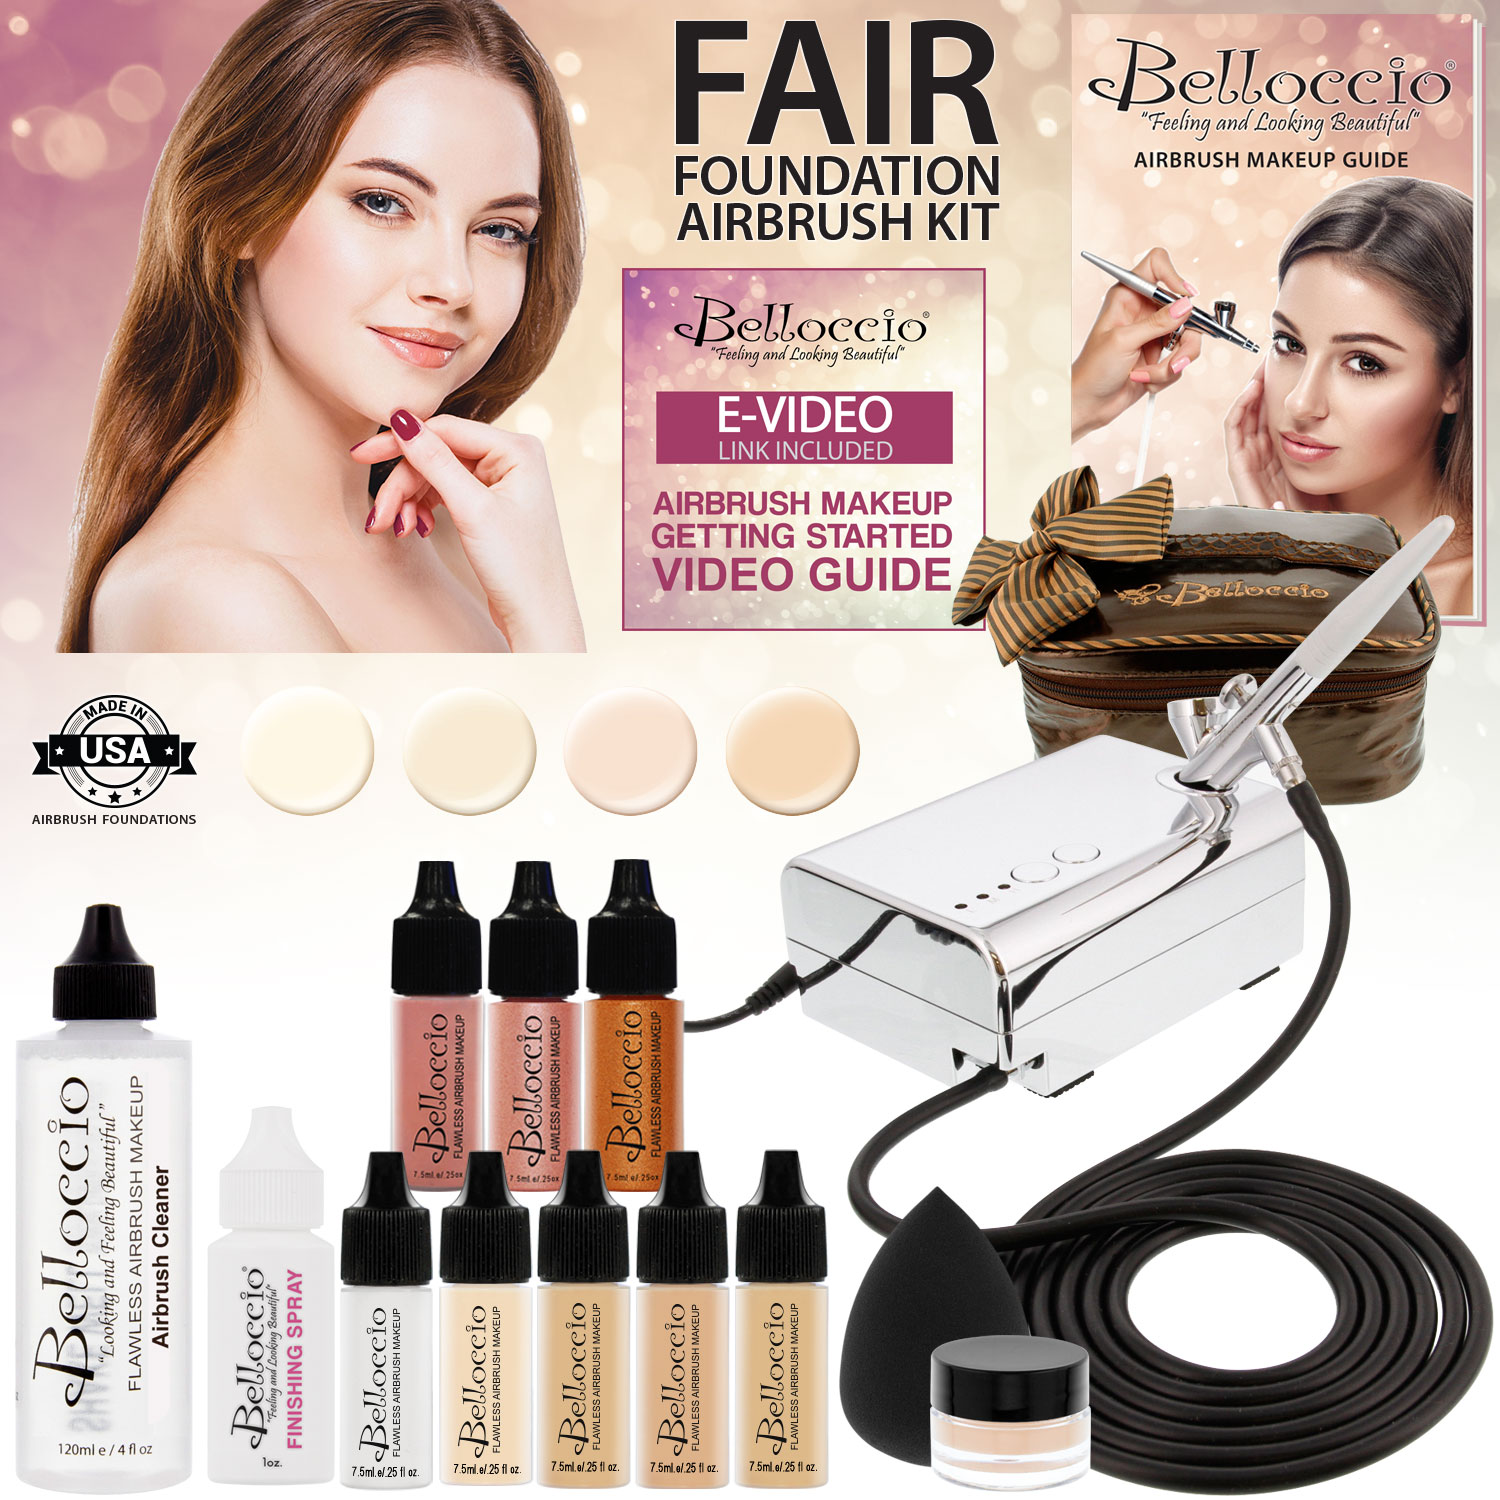 Belloccio Professional Fair Shade AIRBRUSH COSMETIC MAKEUP SYSTEM Holiday Kit